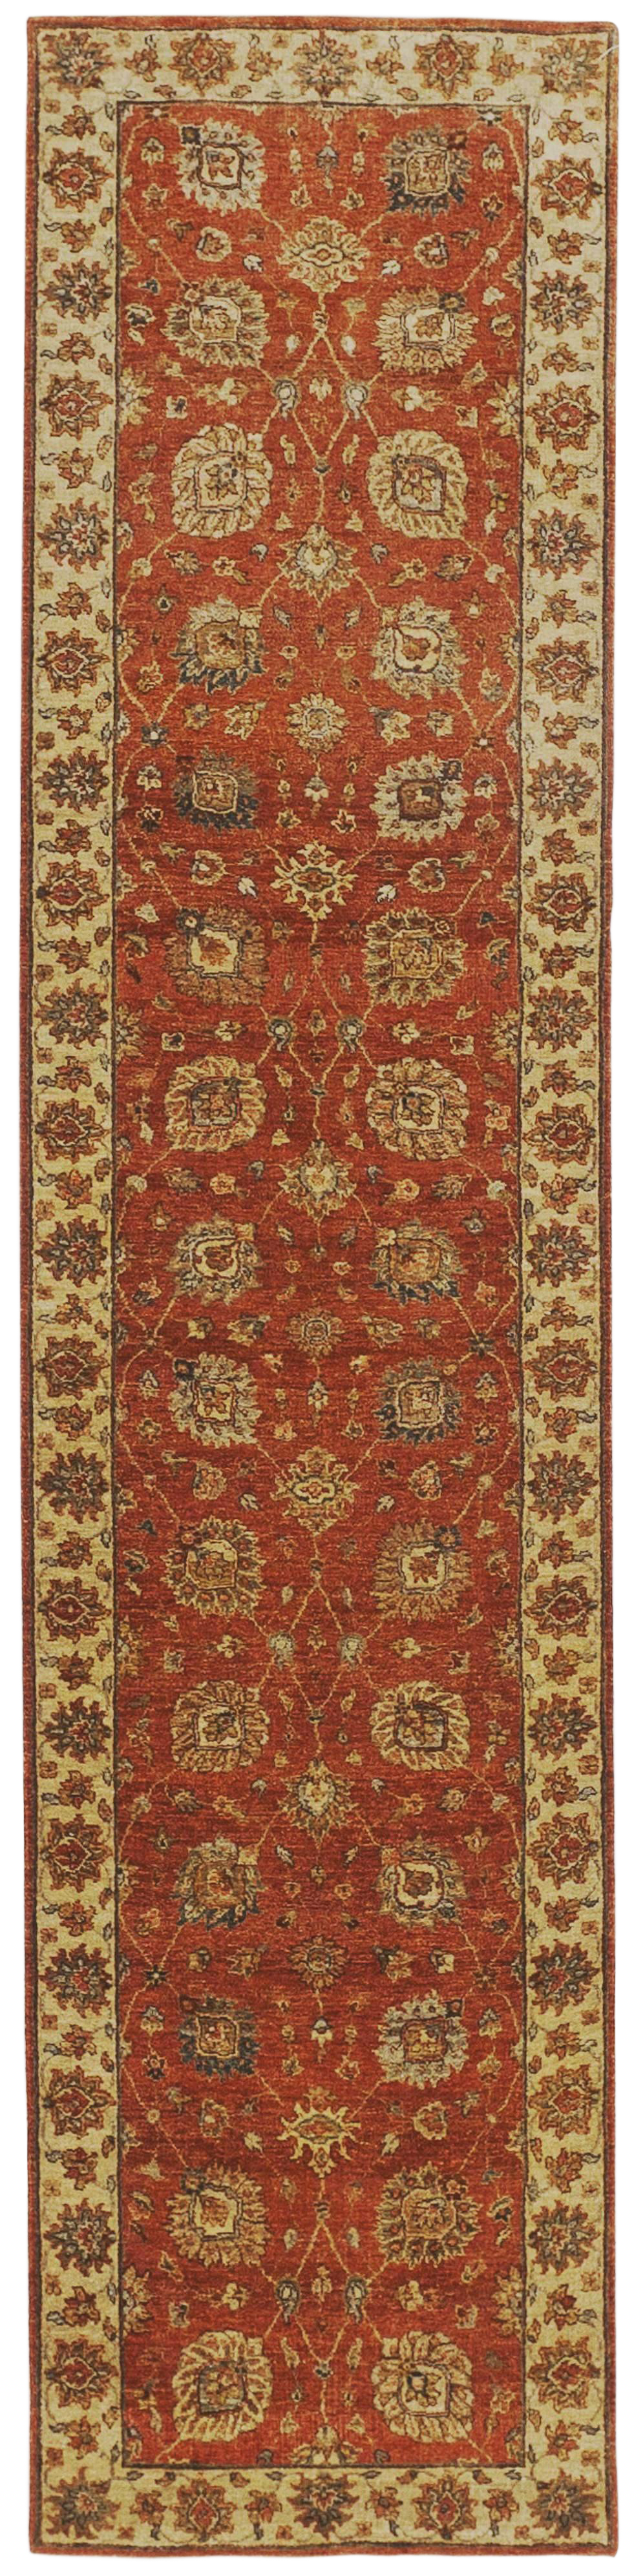 Hand Knotted Indian Runner 2 8 X 11